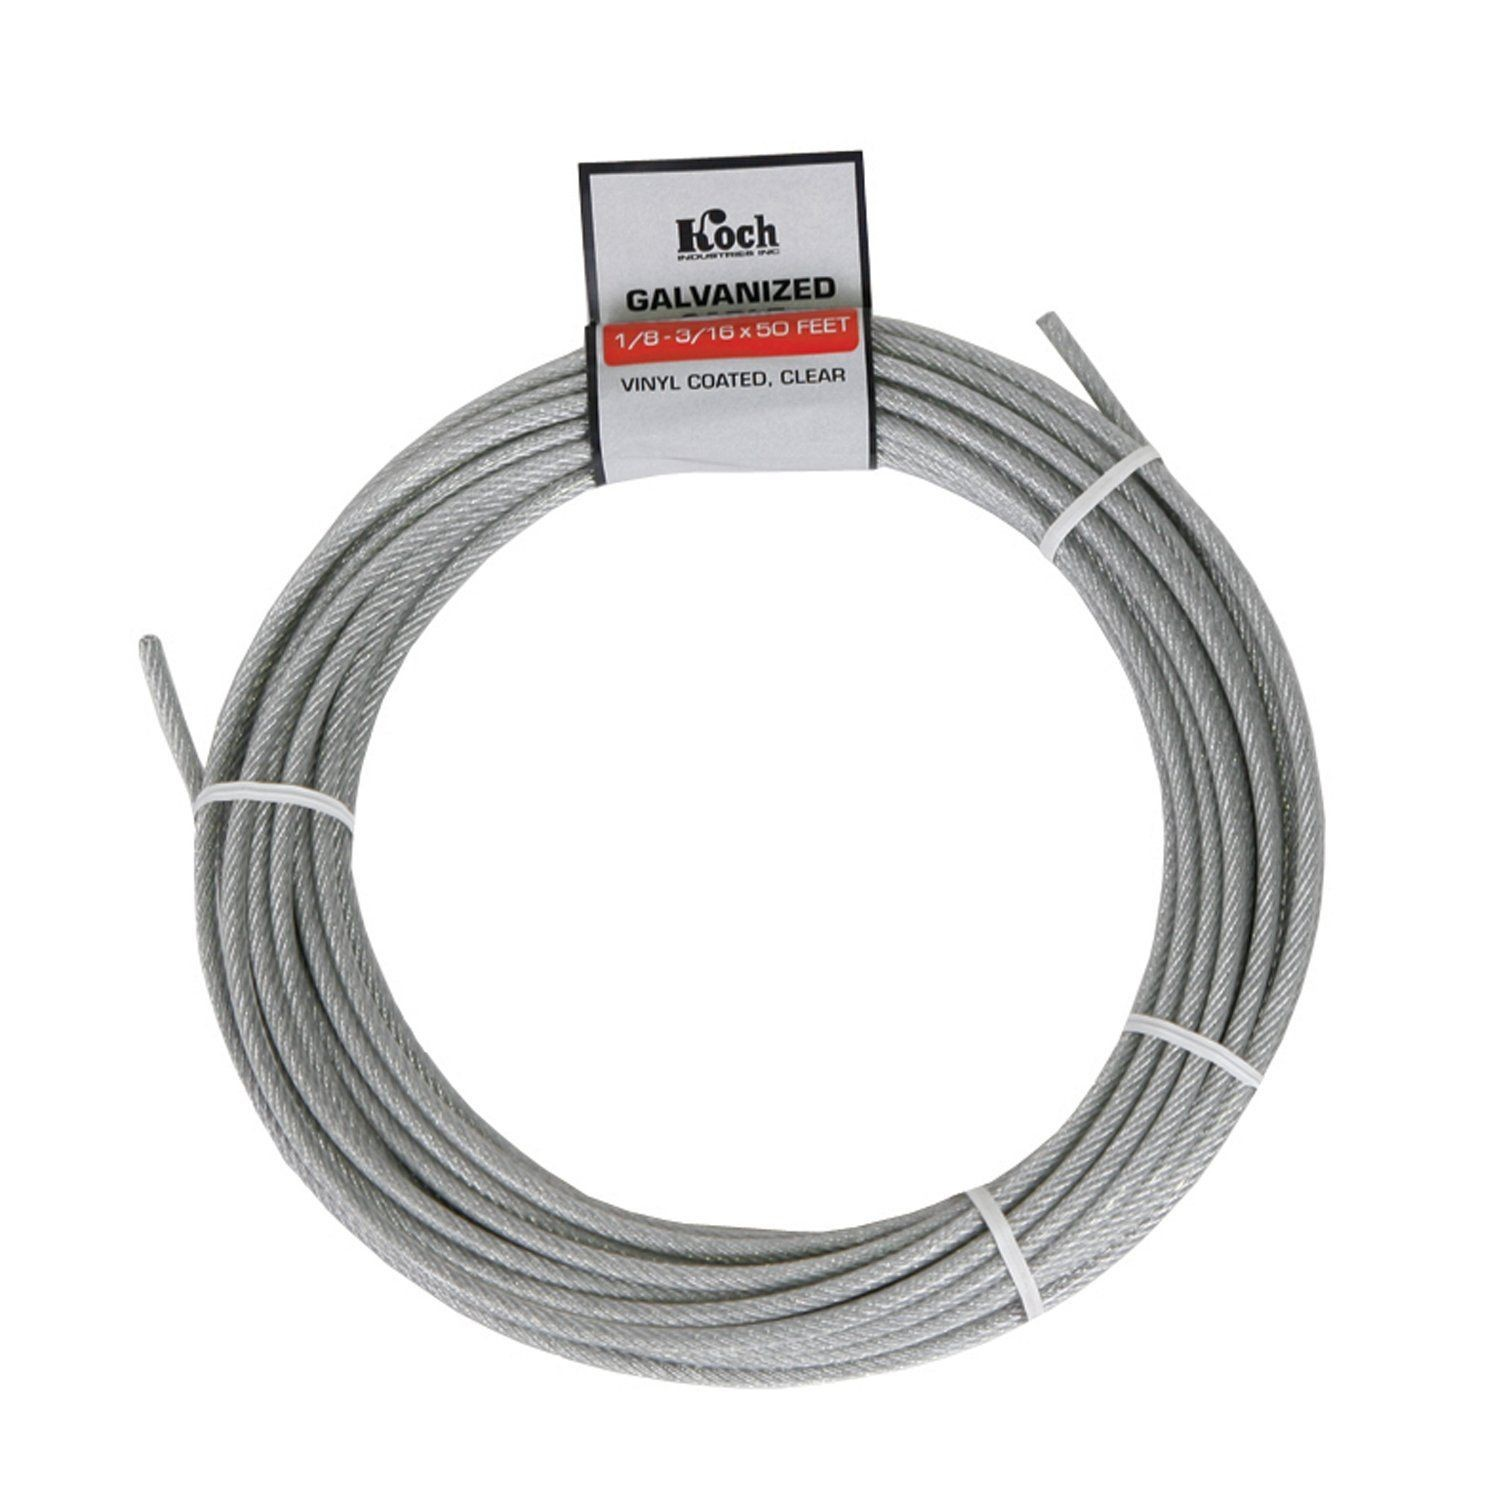 7 x 7 Pre-Cut Vinyl Coated Galvanized Wire Rope Cable 1/8-3/16 Inch ...